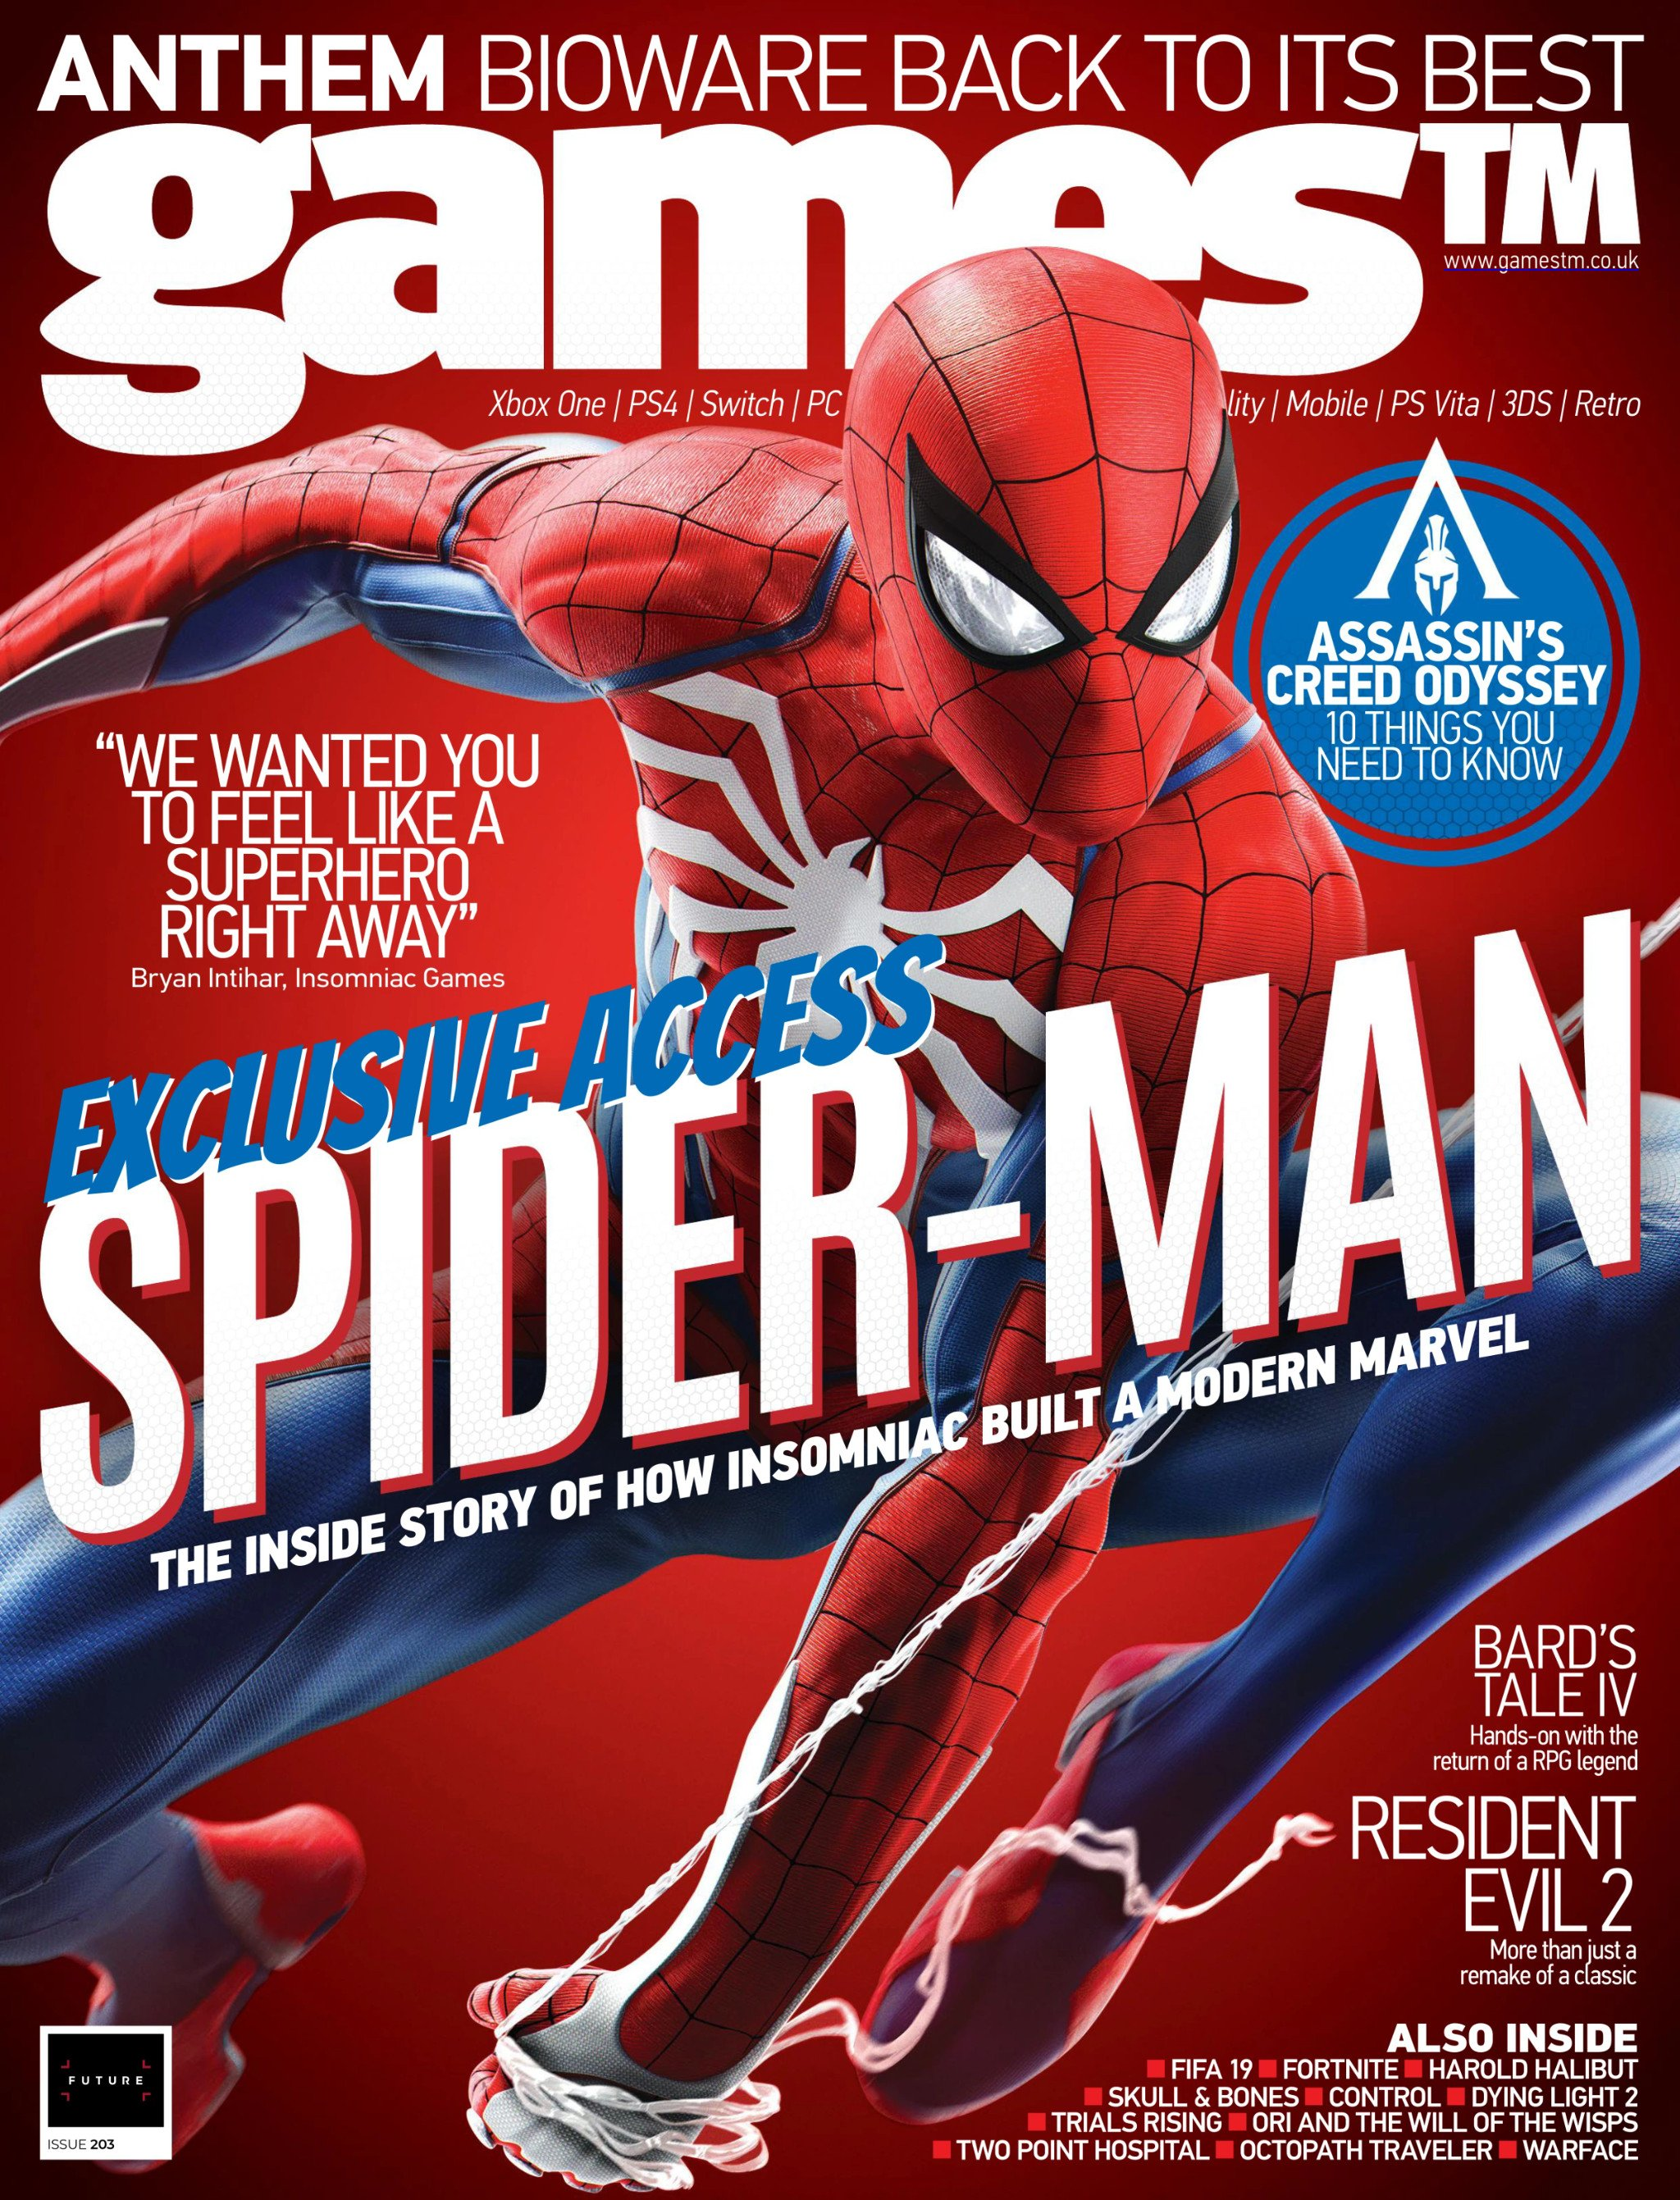 Games TM Issue 203 (August 2018)